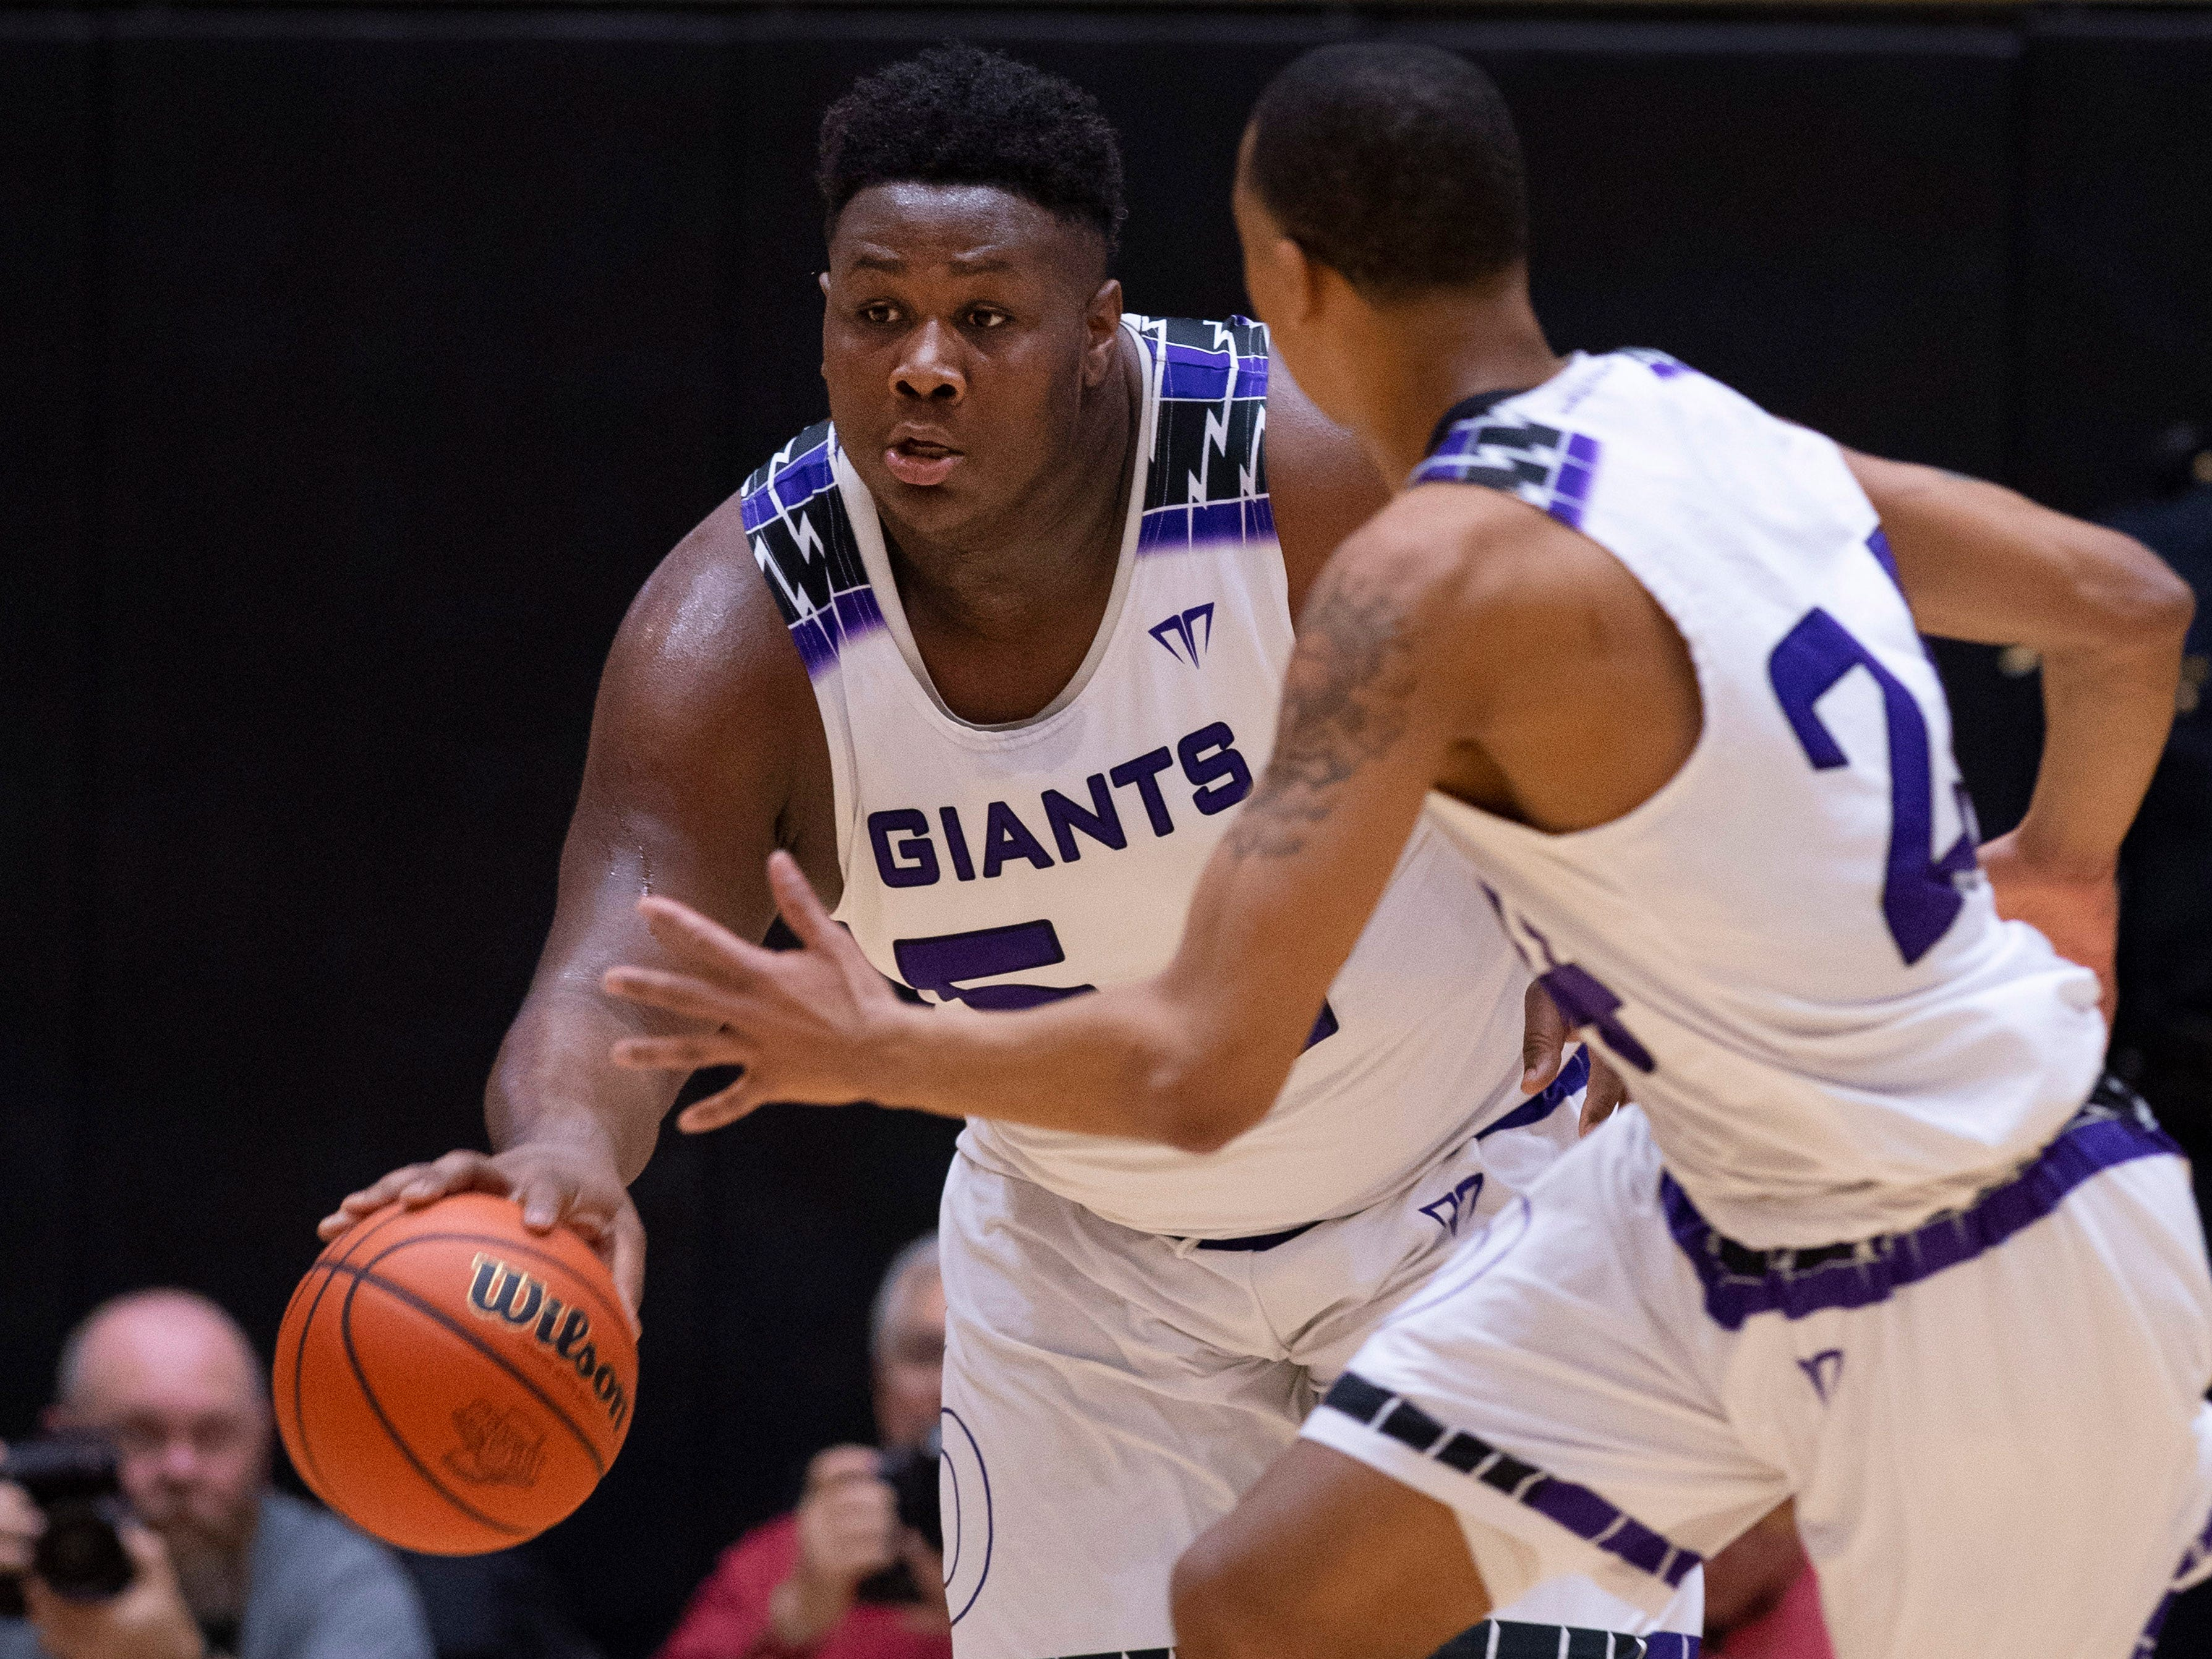 Ben Davis's Dawand Jones (54) brings the ball up court after grabbing a rebound against Center Grove during the 4A Boys Indiana Semi-State Basketball Tournament at the Hatchet House in Washington, Ind., Saturday afternoon.